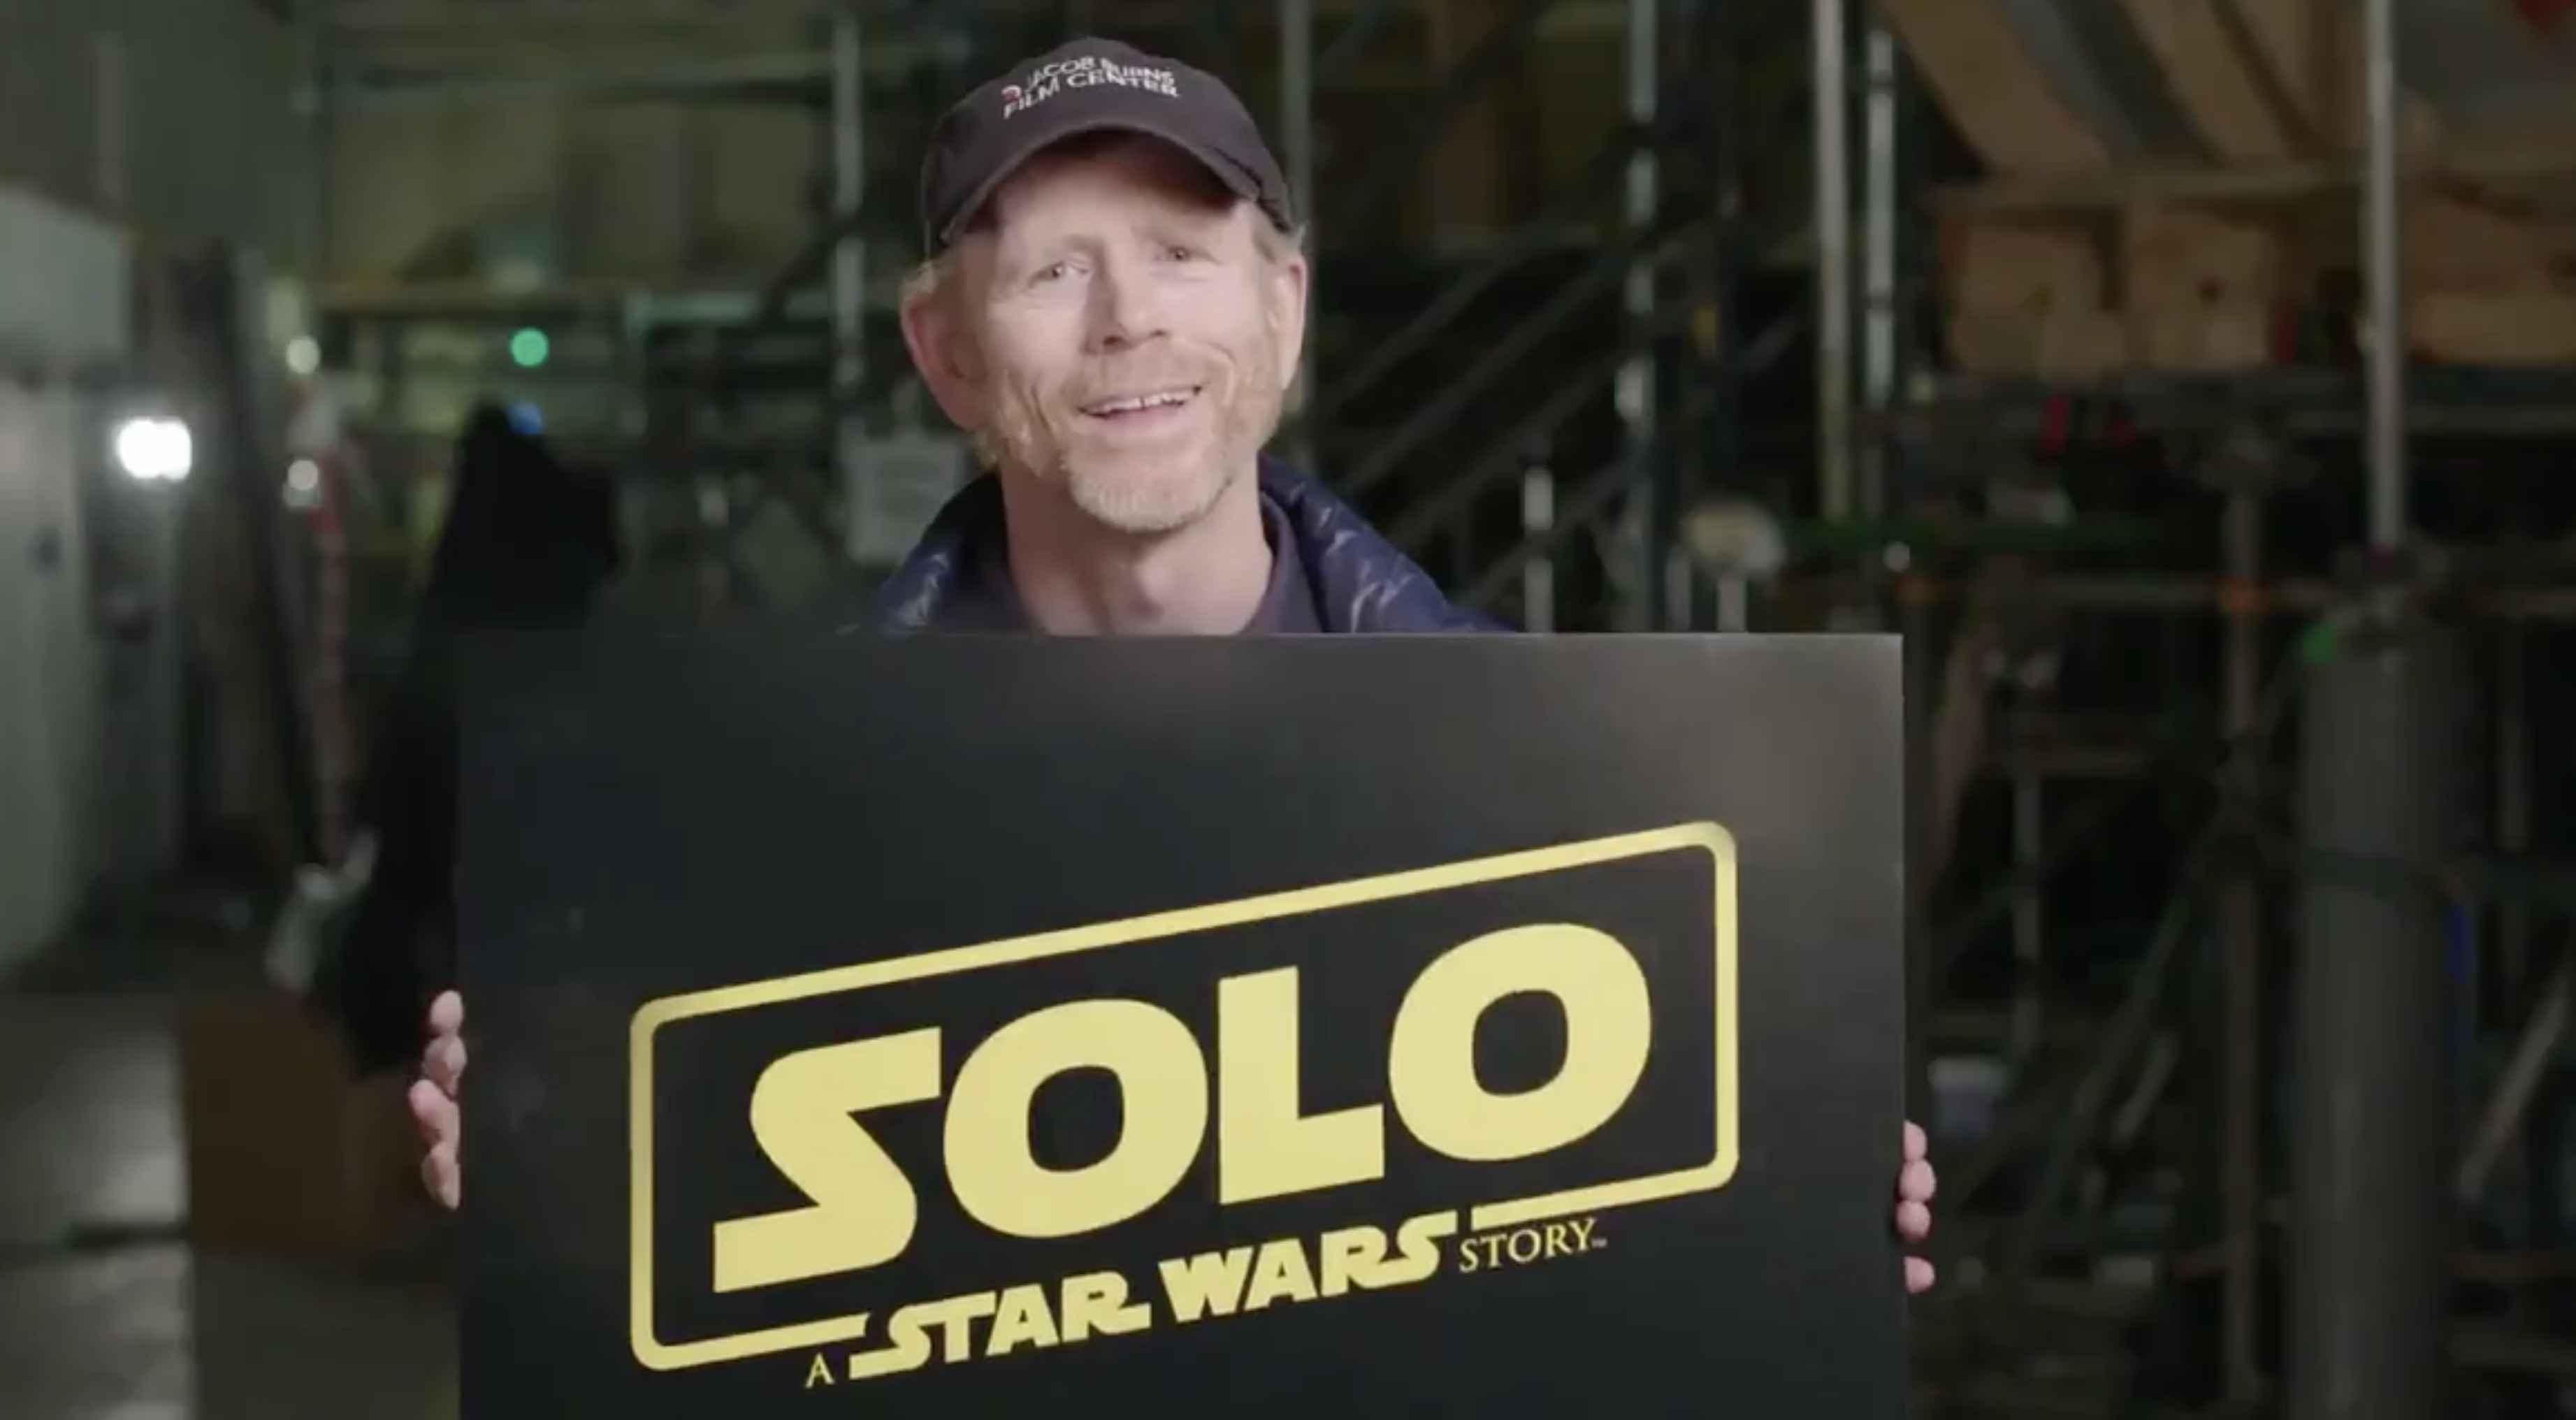 Han Solo Star Wars prequel to be titled Solo